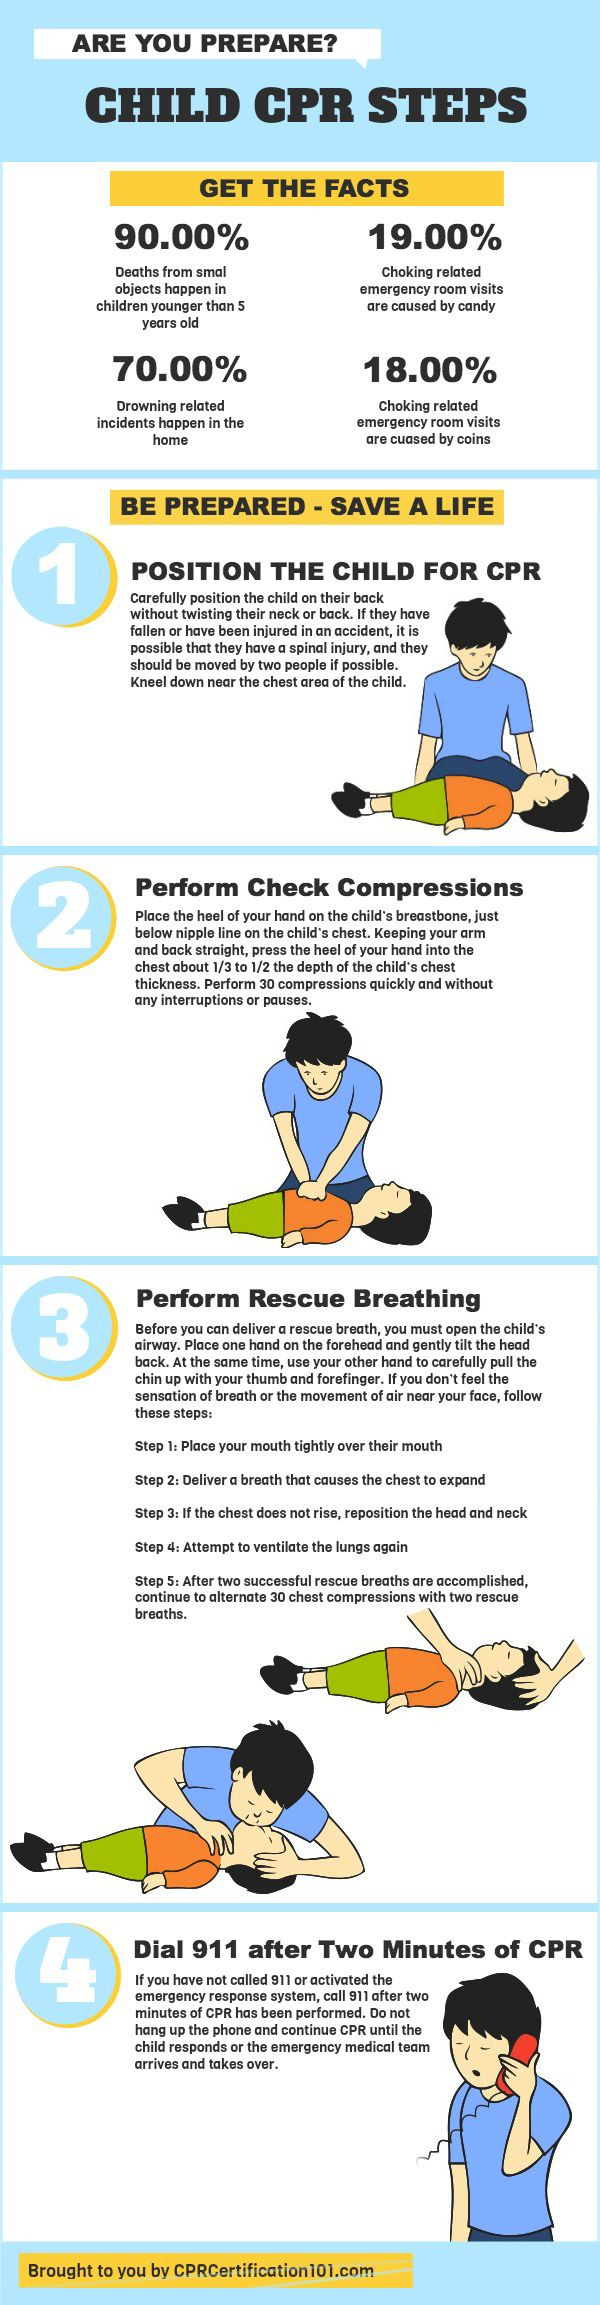 Child CPR Steps - Are you Prepared? #Infographic #health